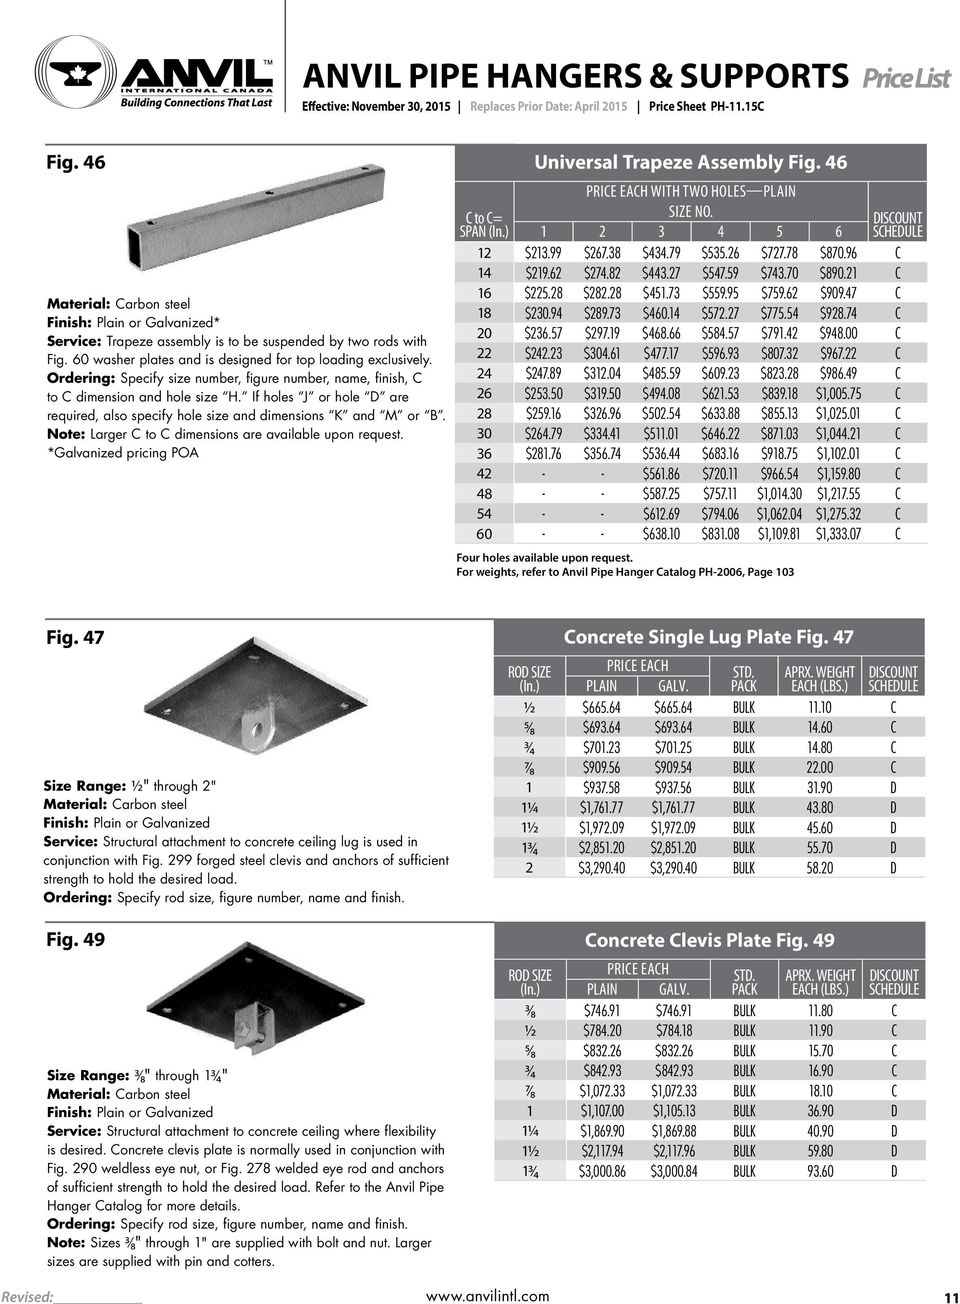 PIPE HANGERS AND SUPPORTS PRICE LIST AND CONDENSED CATALOG - PDF